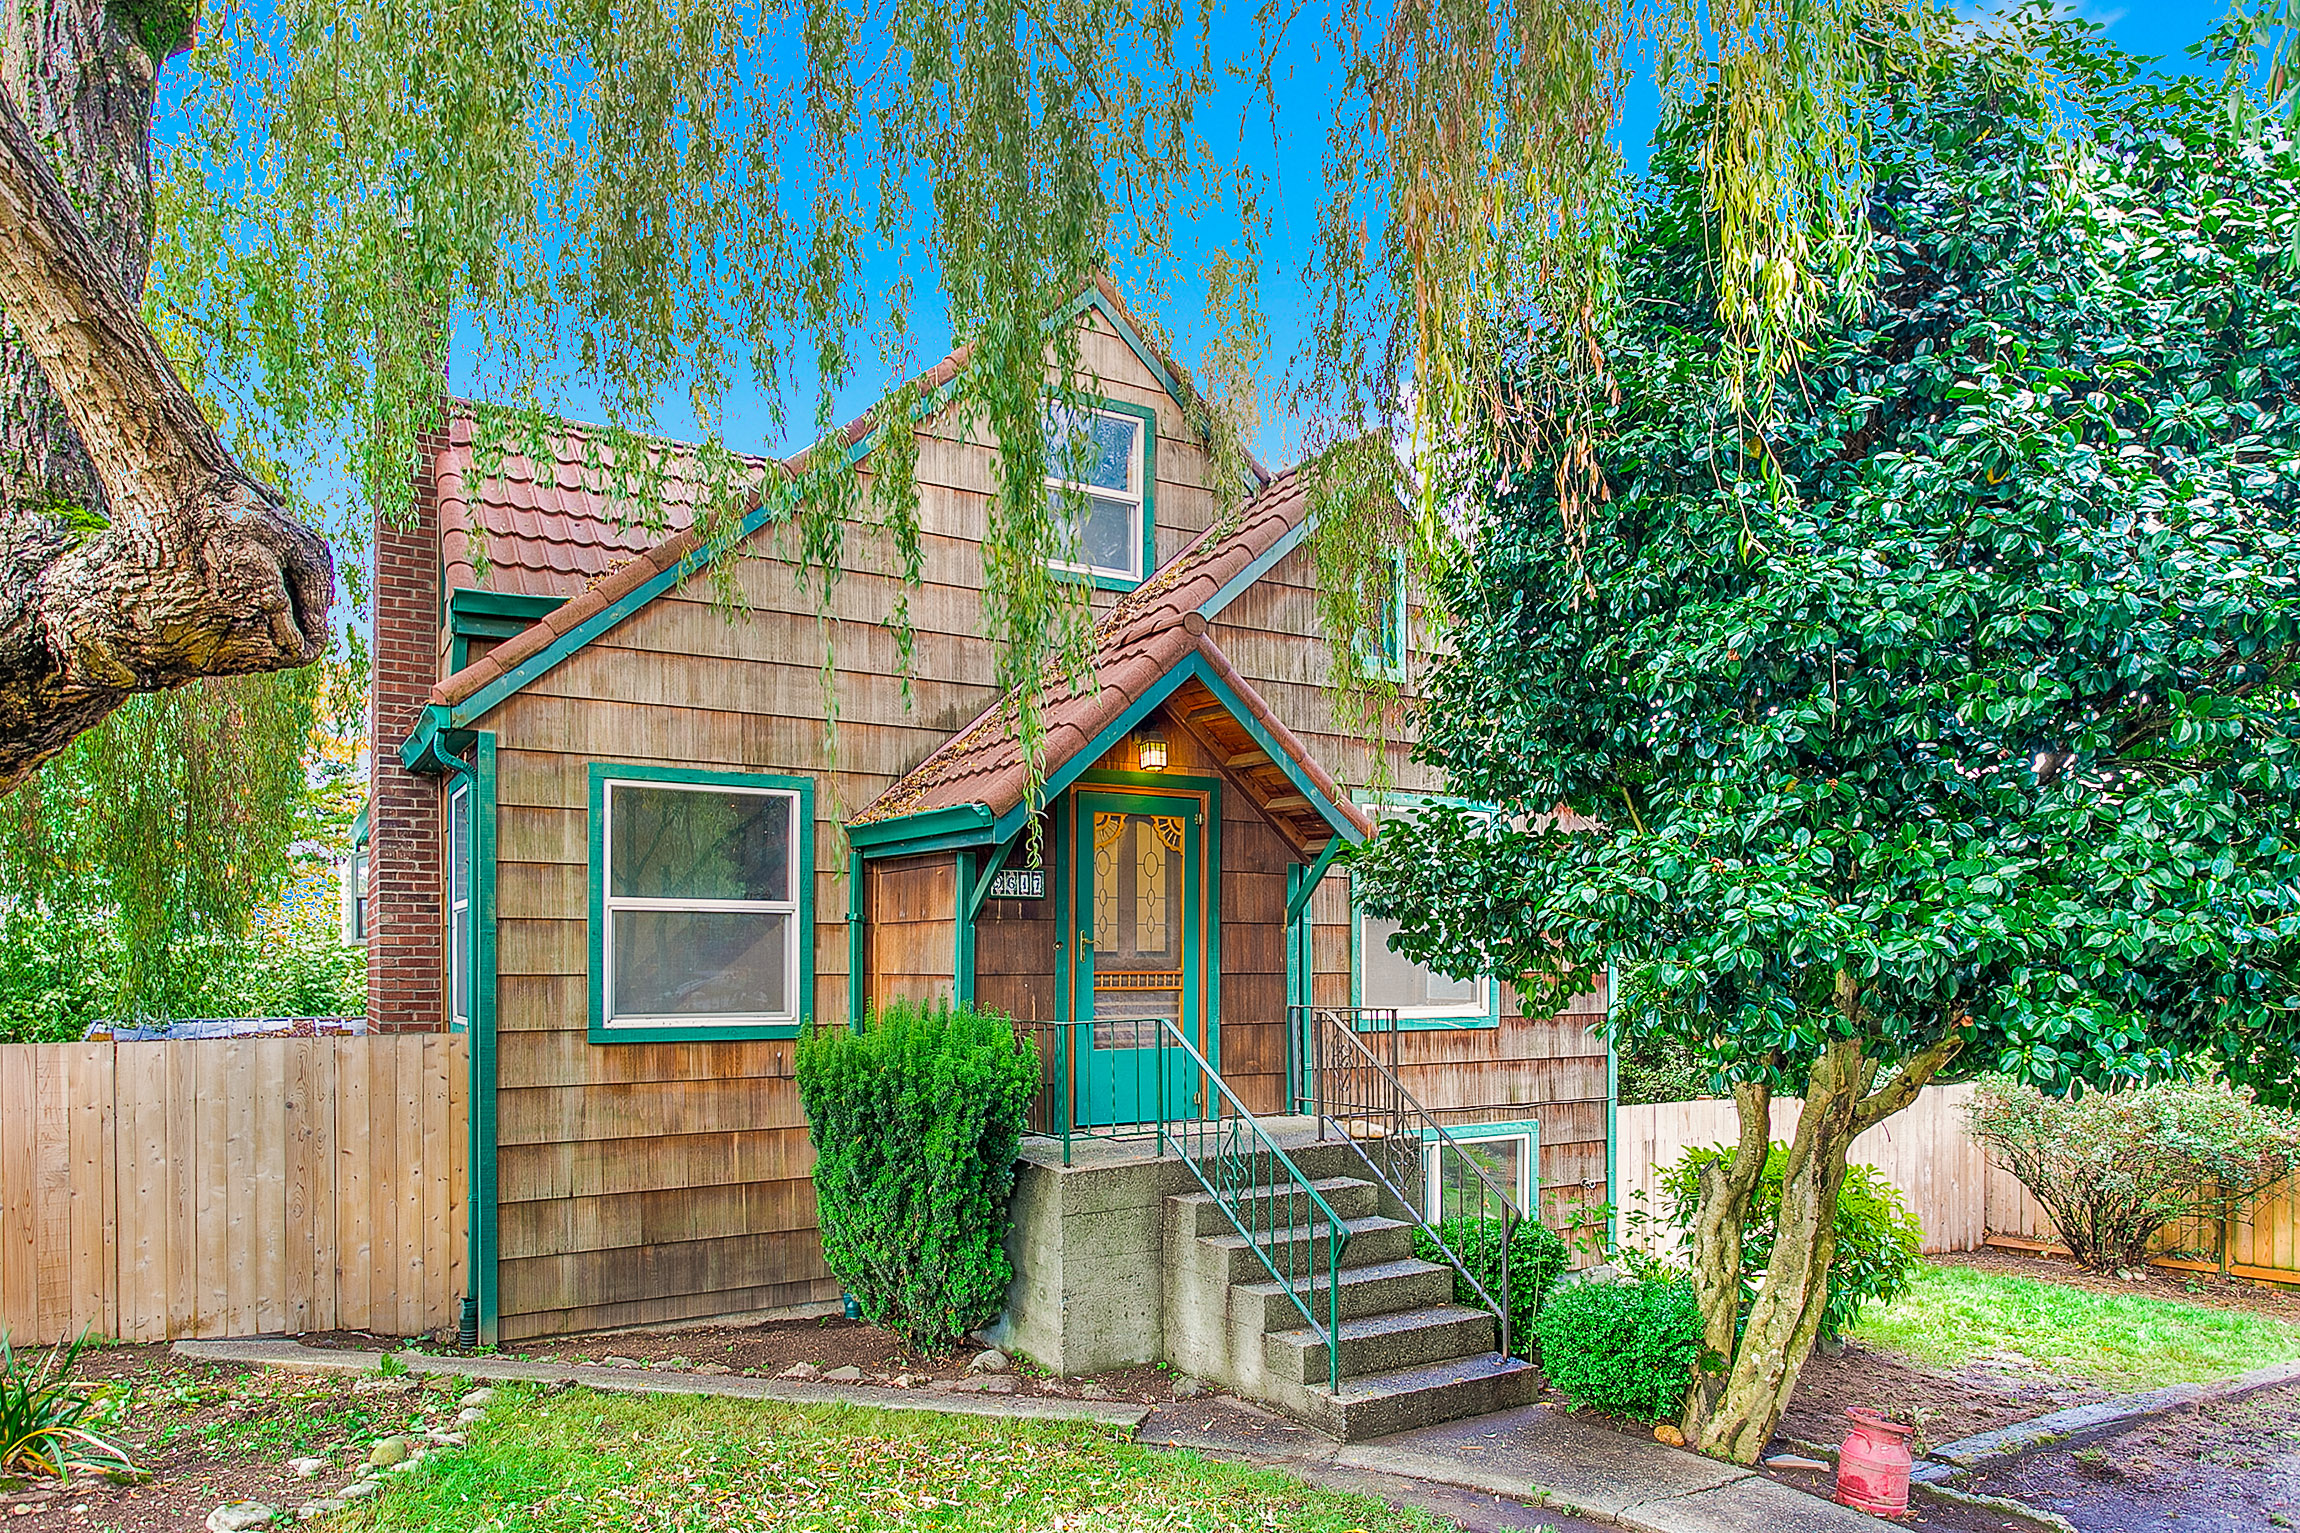 Arbor Heights Charmer - $500,000